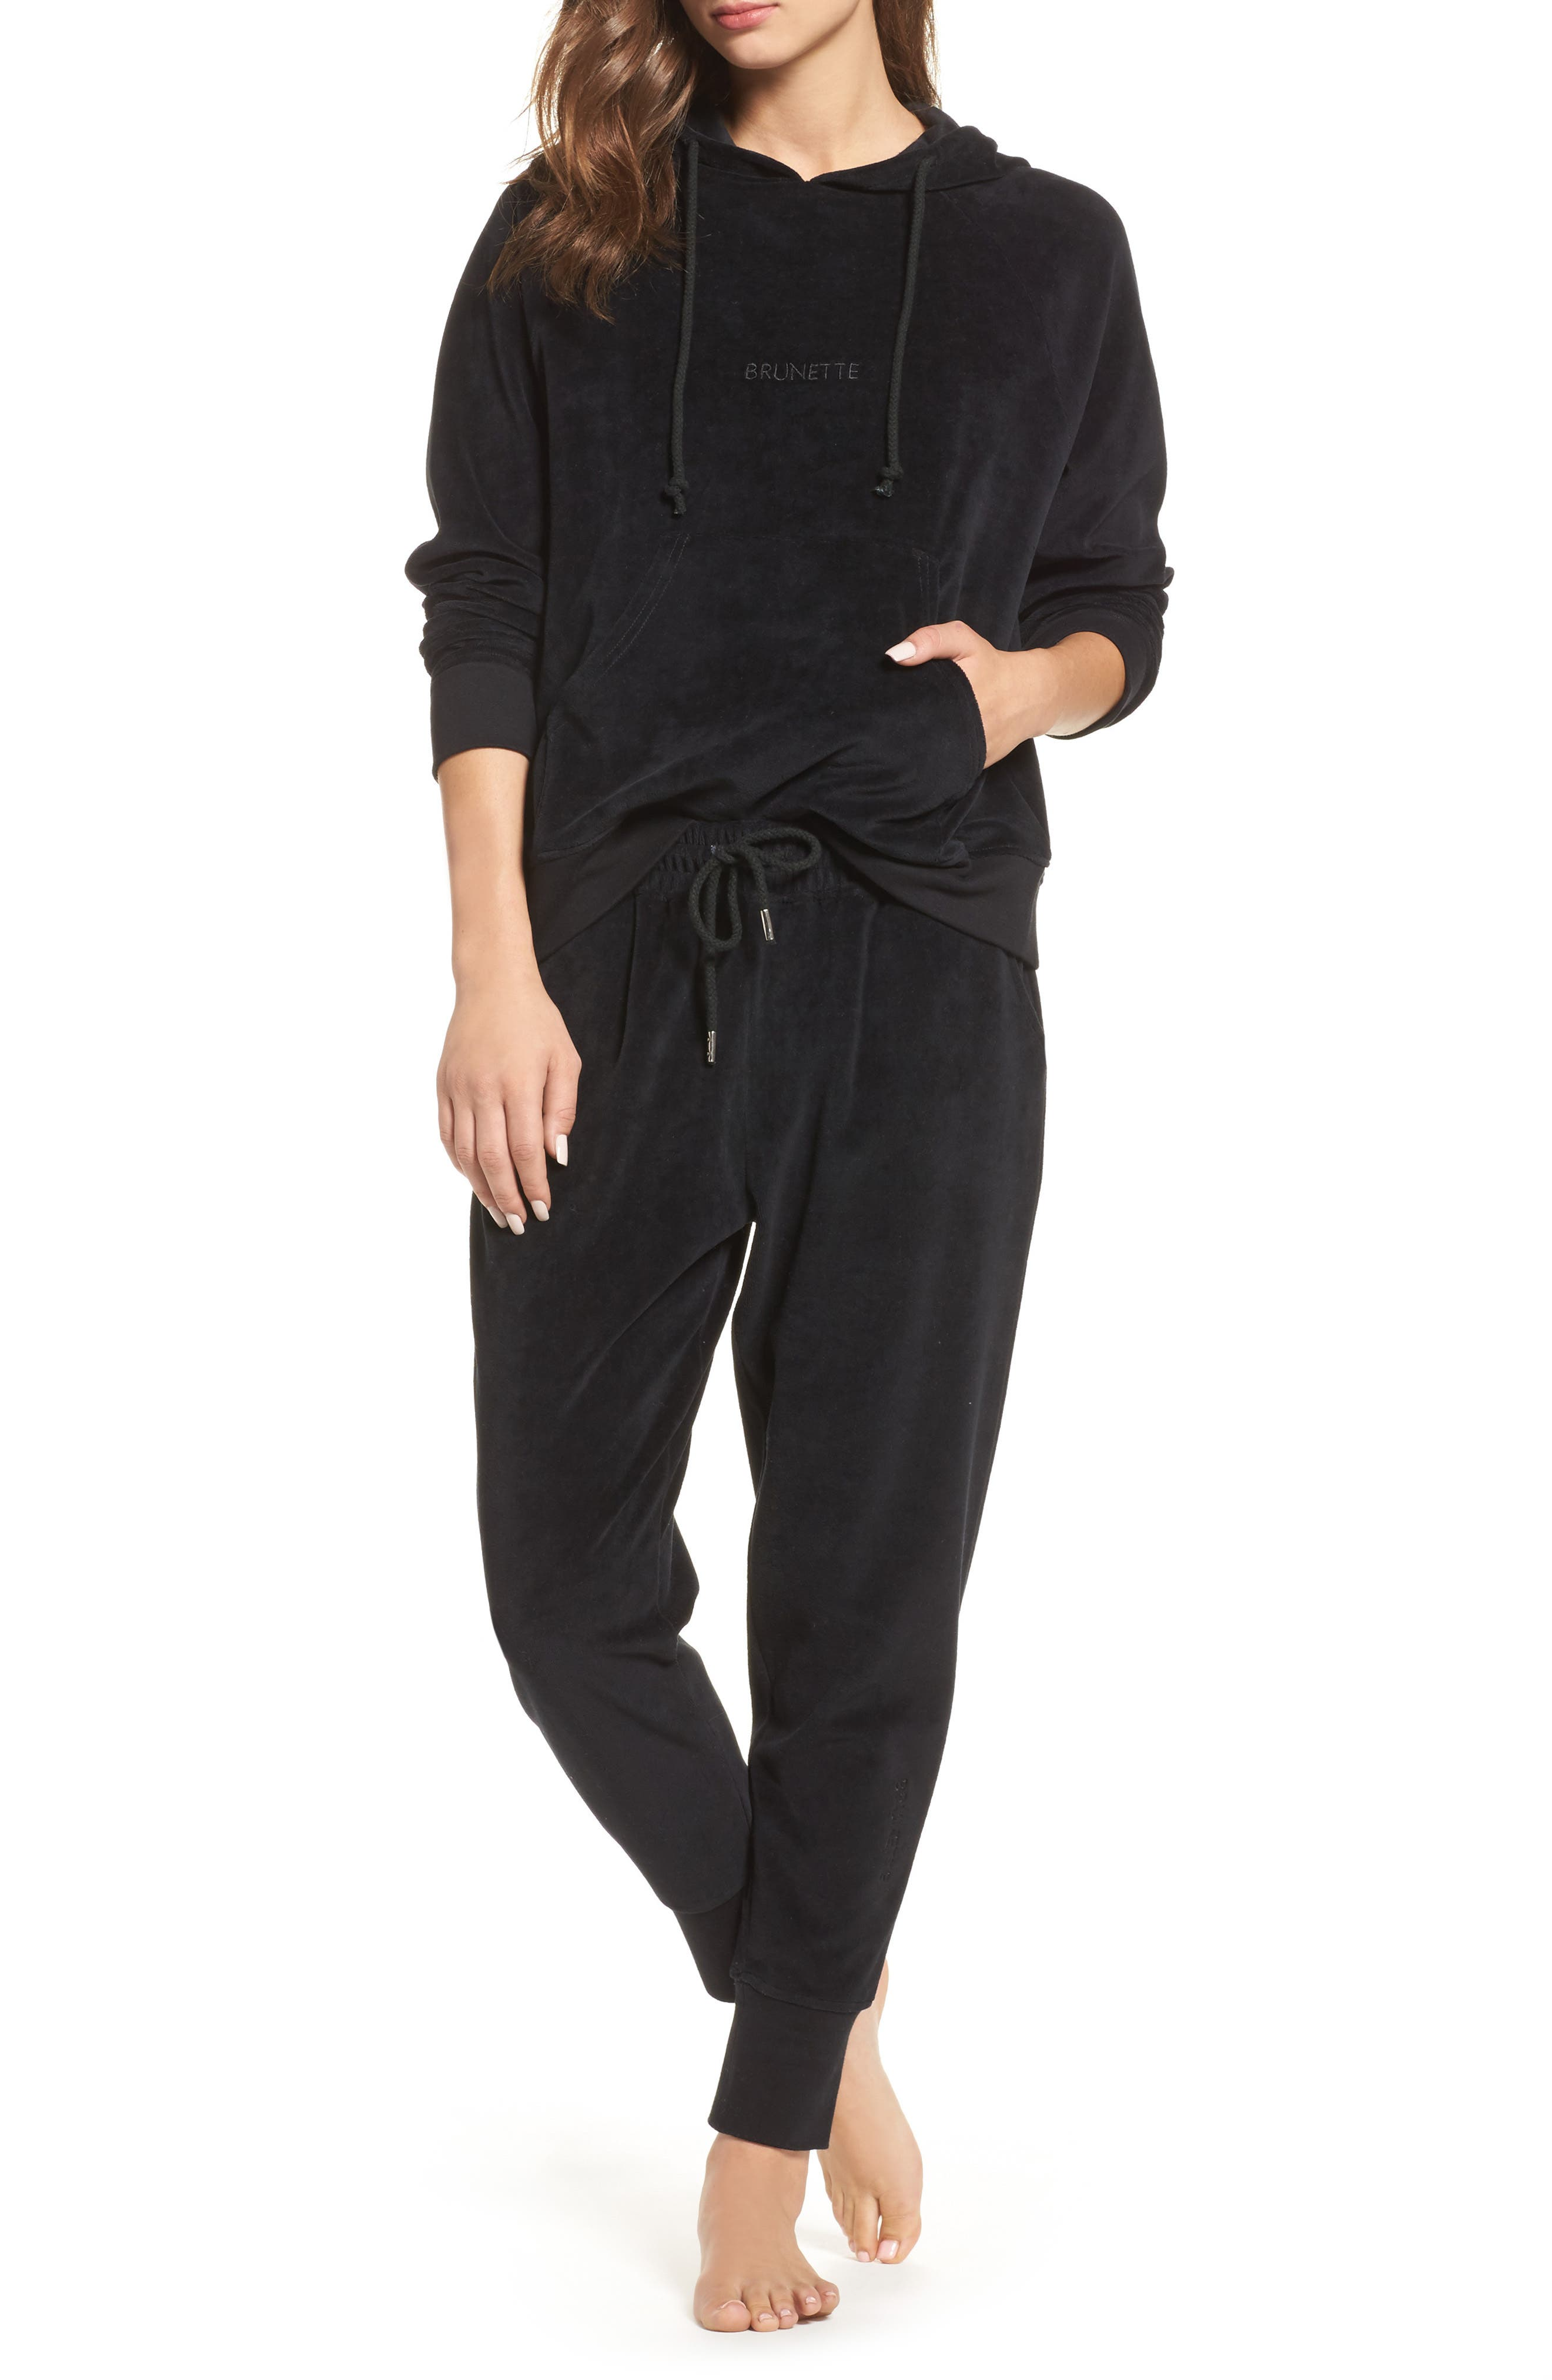 Brunette Embroidered Velour Jogger Pants,                             Alternate thumbnail 6, color,                             Black